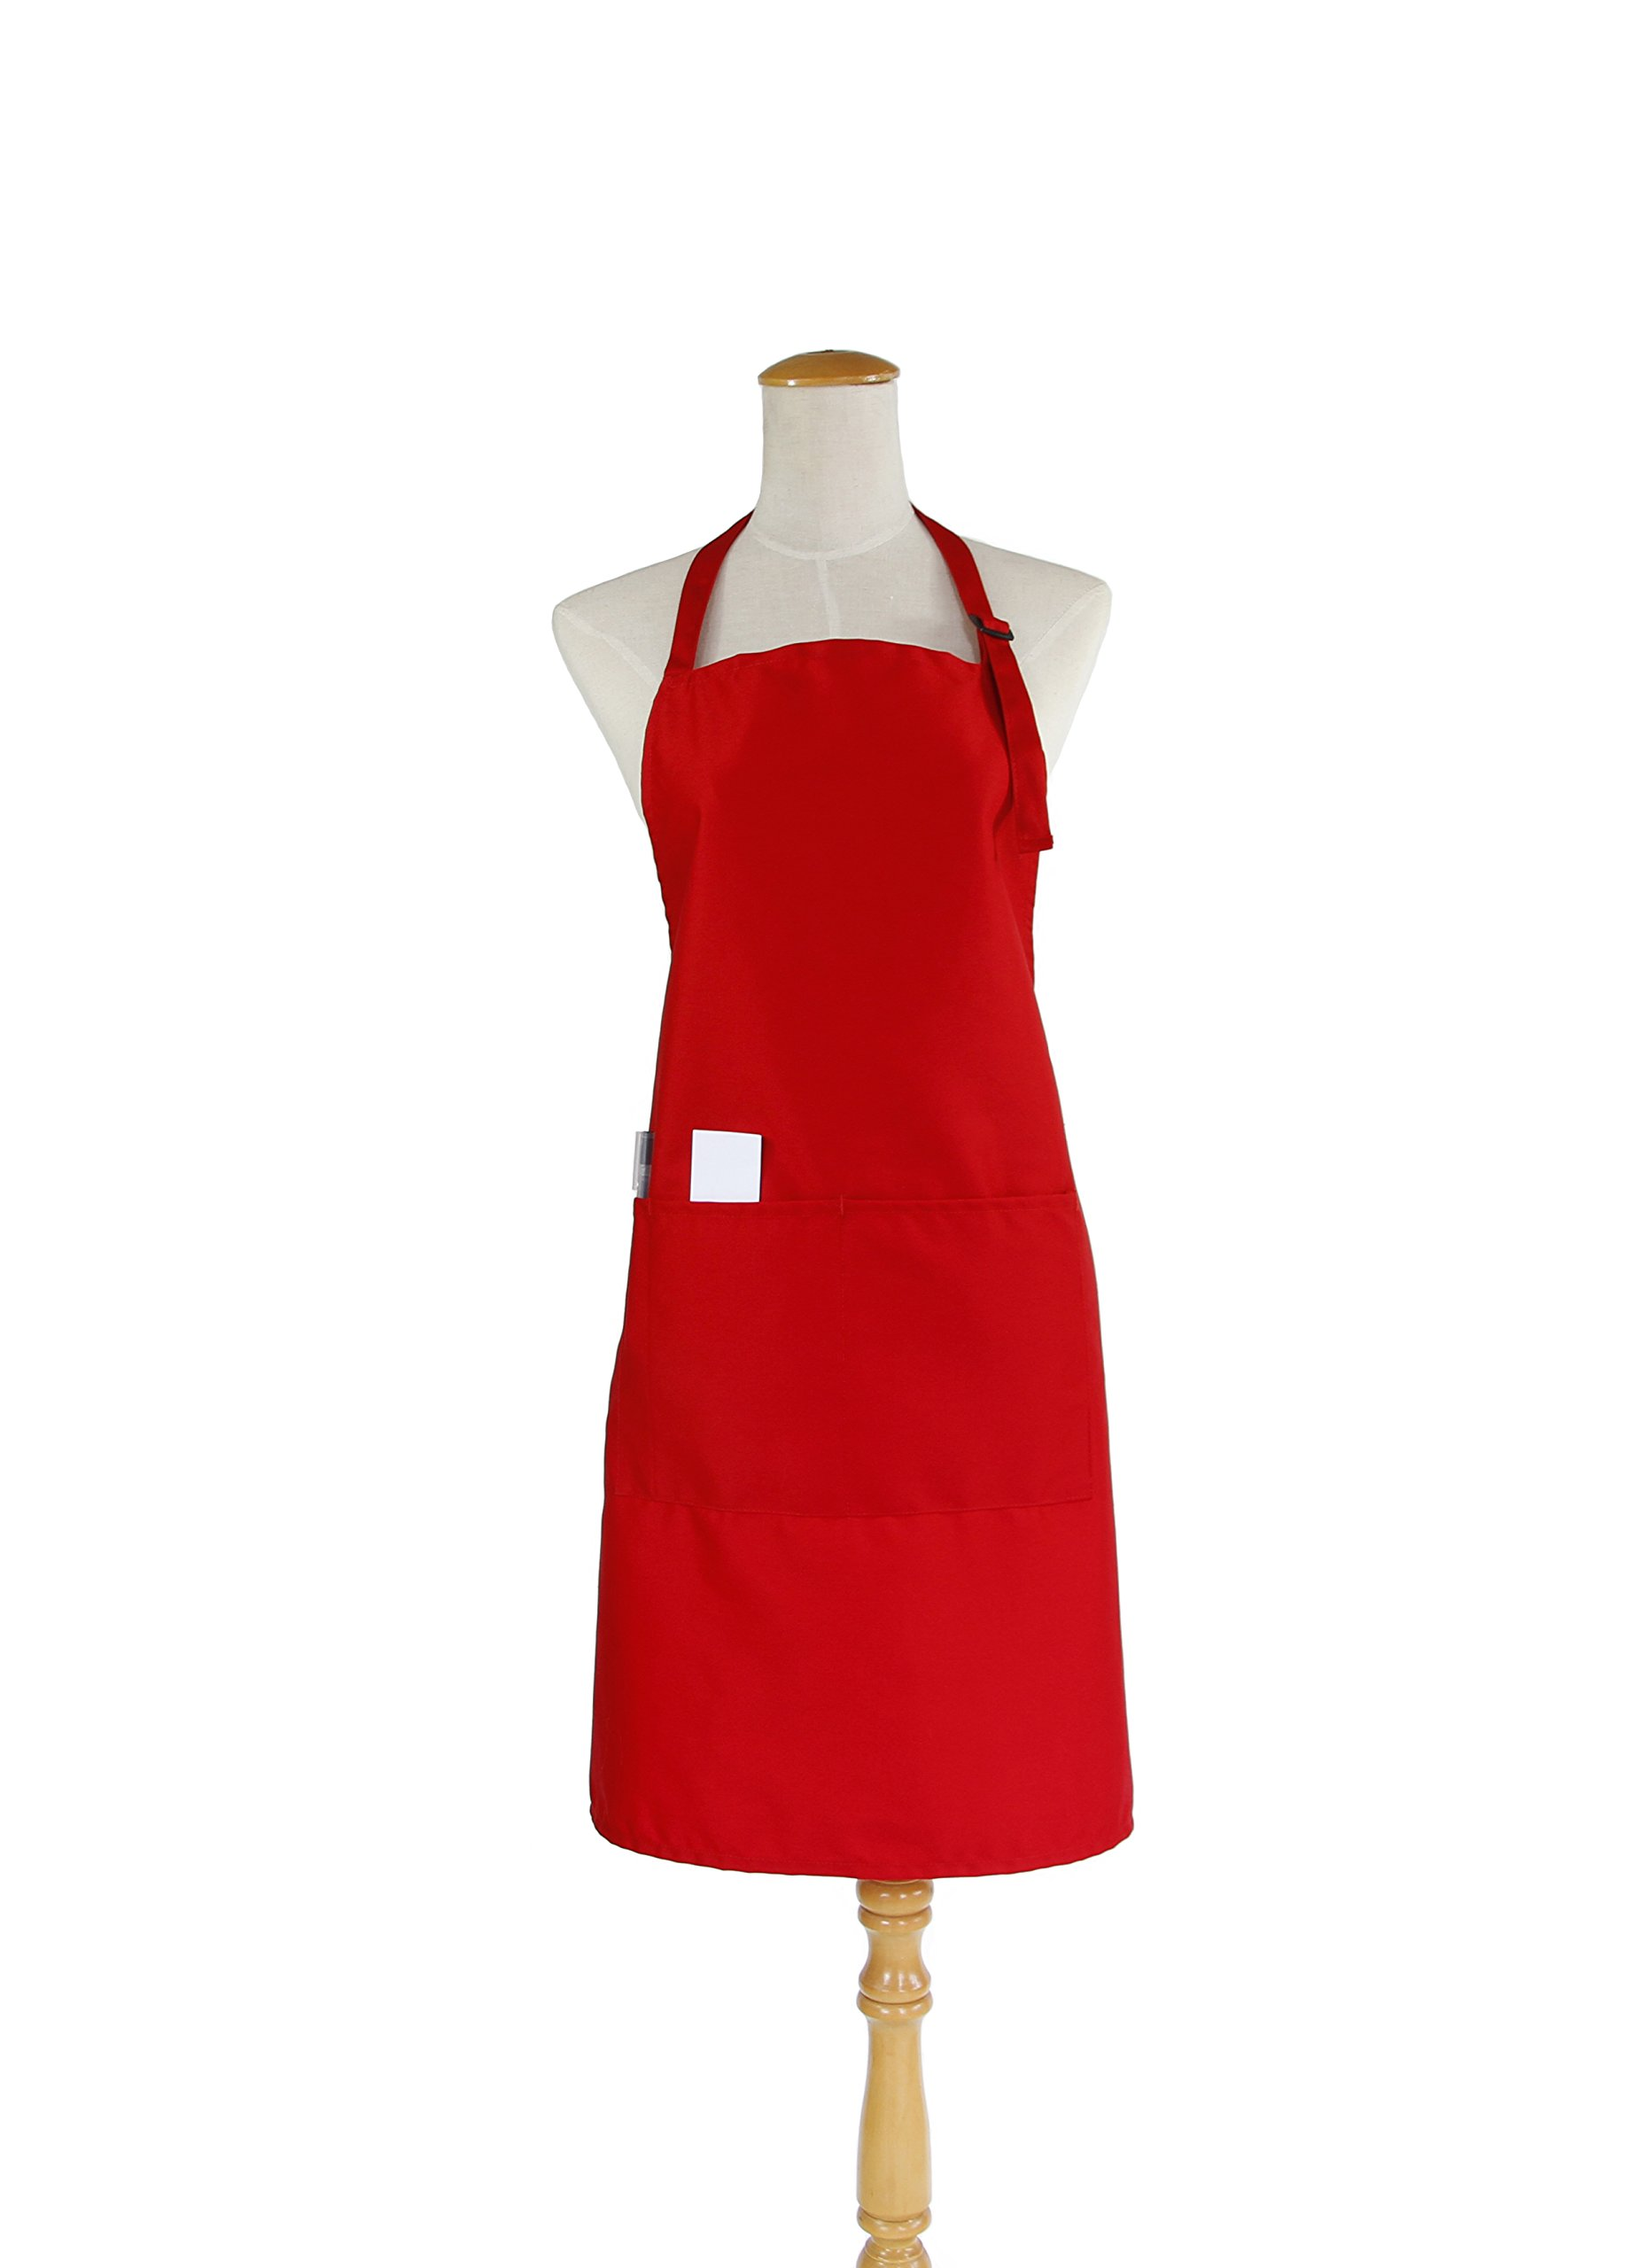 Bib Apron Cooking Kitchen Aprons Adjustable Waterproof Apron with Double Pockets